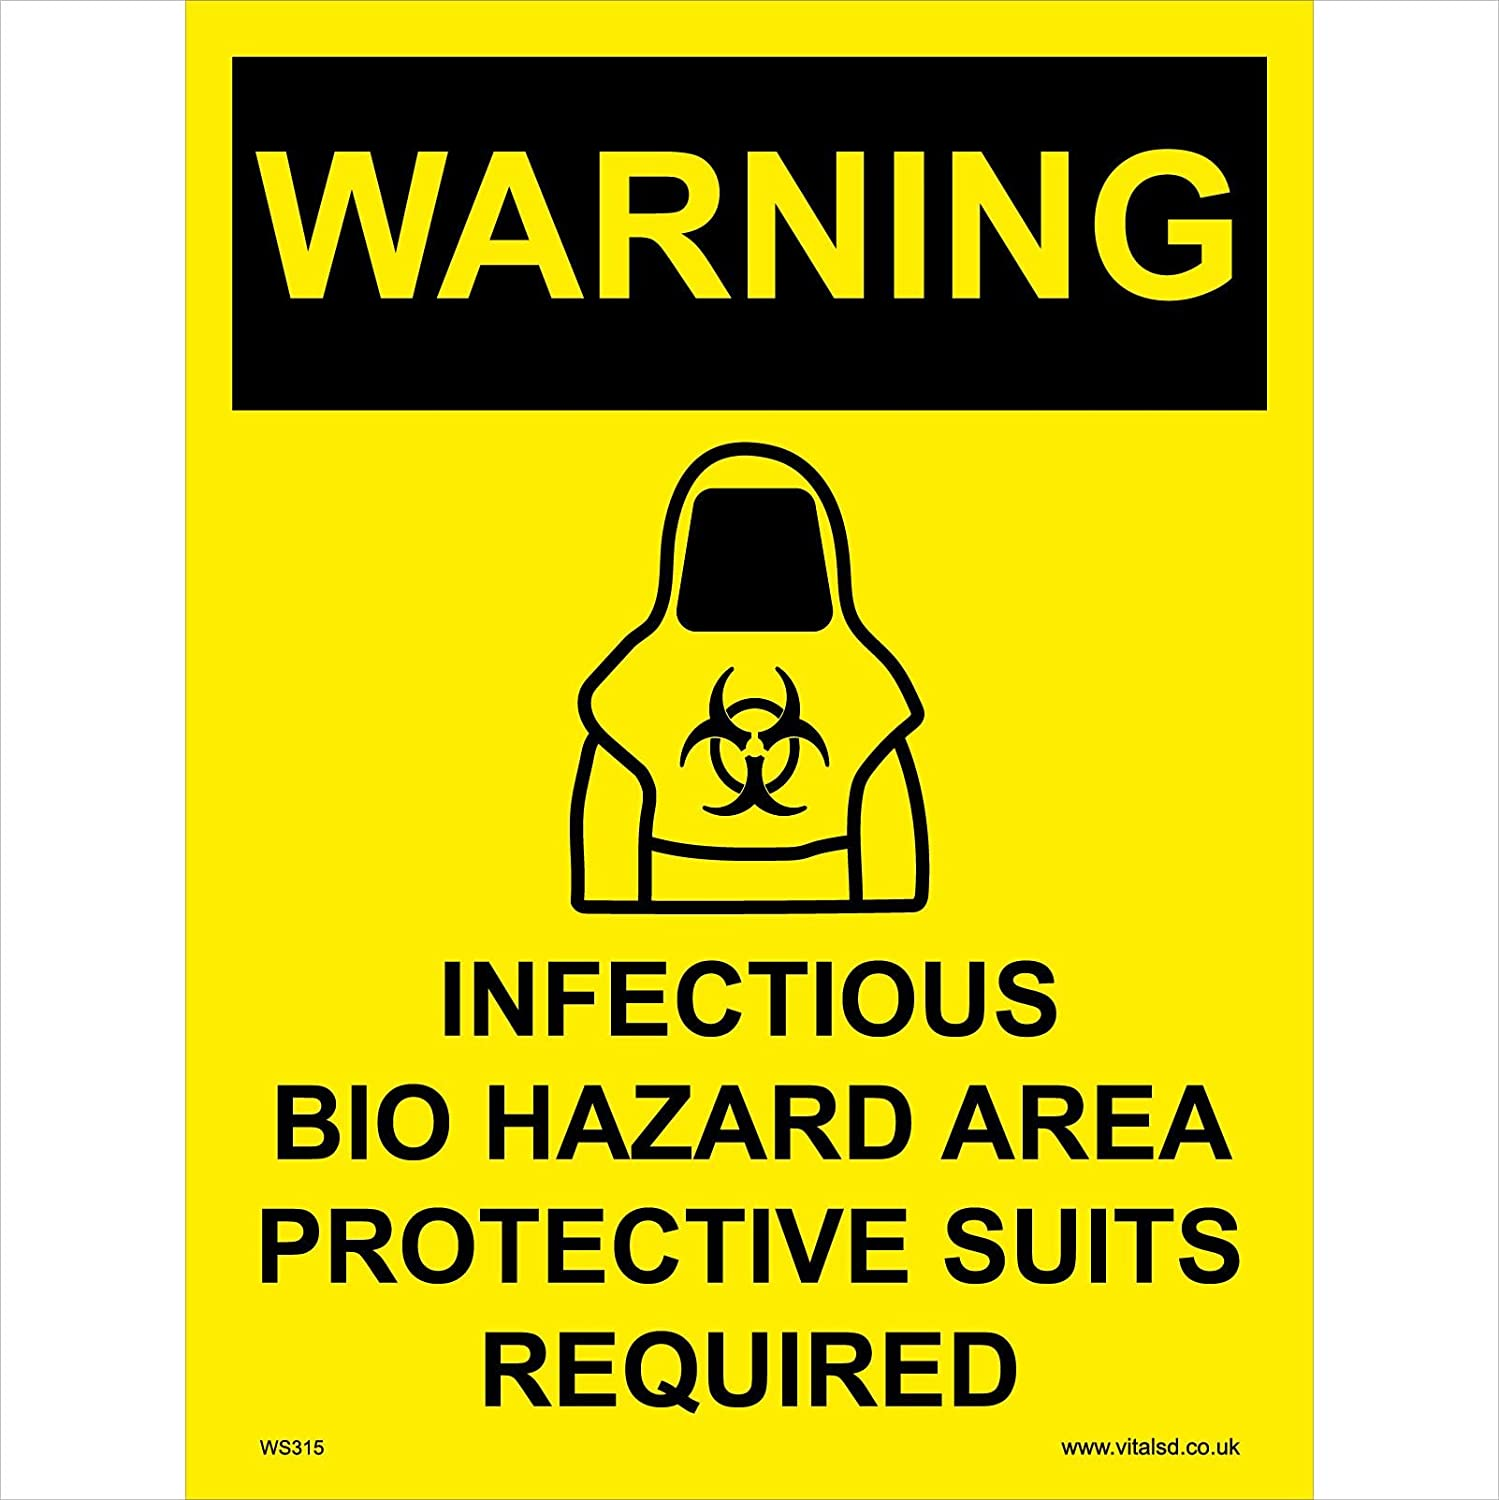 WS315 Warning Sign Warning INFECTIOUS BIO Hazard Area Protective Suits Required Signs 200mm x 300mm .Sticker//SAV White Background